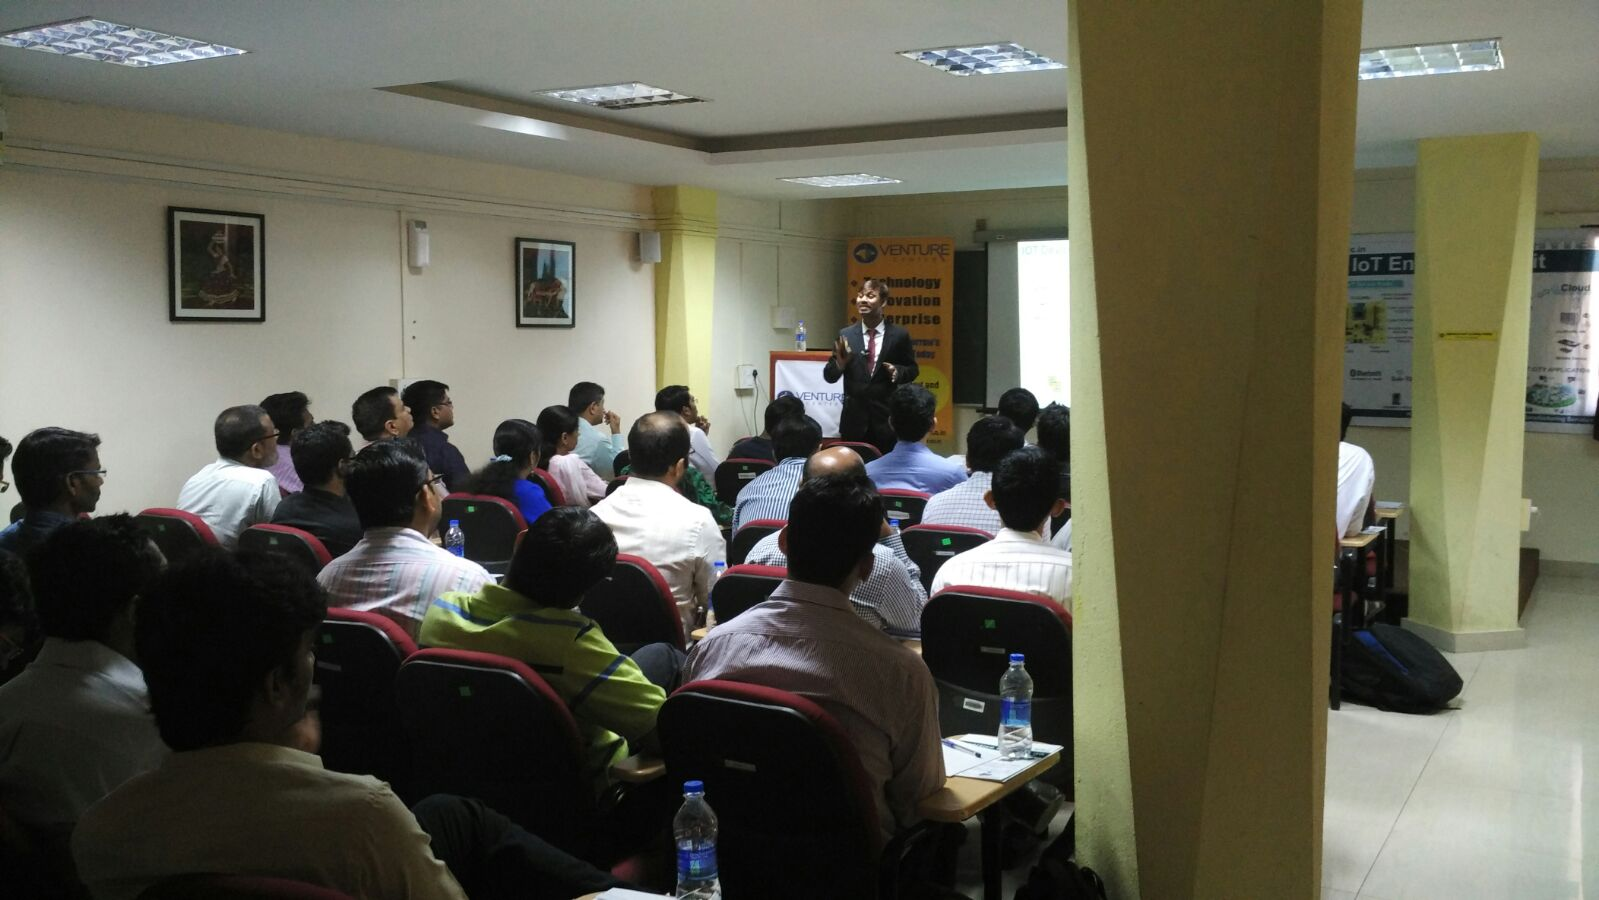 PHYTEC INDIA conducted IoT Tech Day @ Venture Center, Pune on 11th Feb 2016